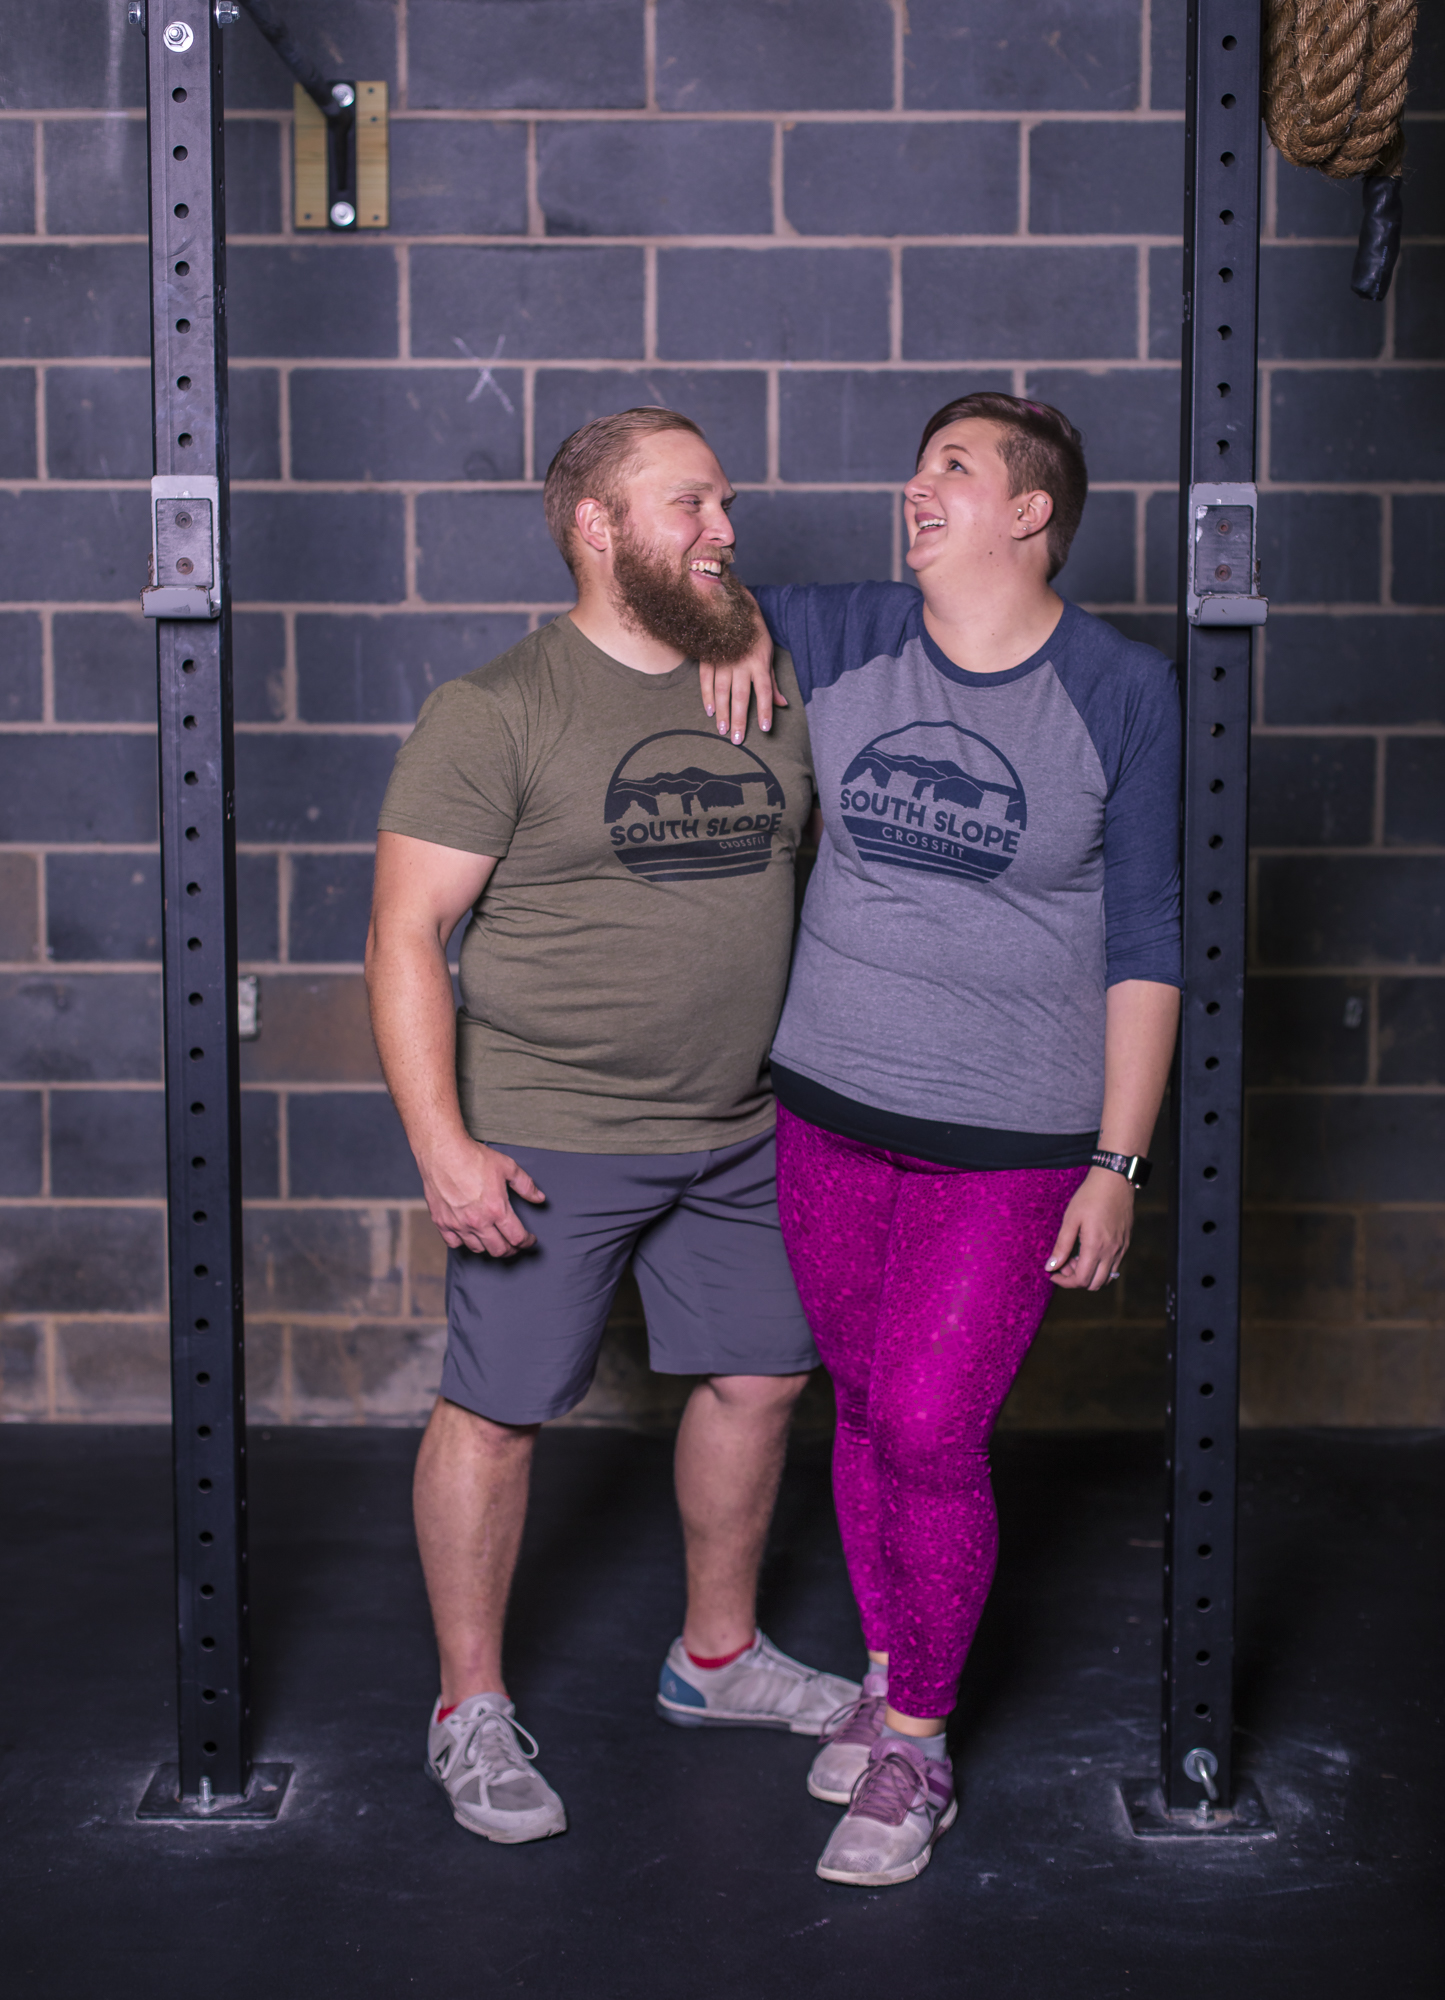 Jessica and Derek Gym Engagement Photos_by Studio Misha Photography_BLOG-90.jpg